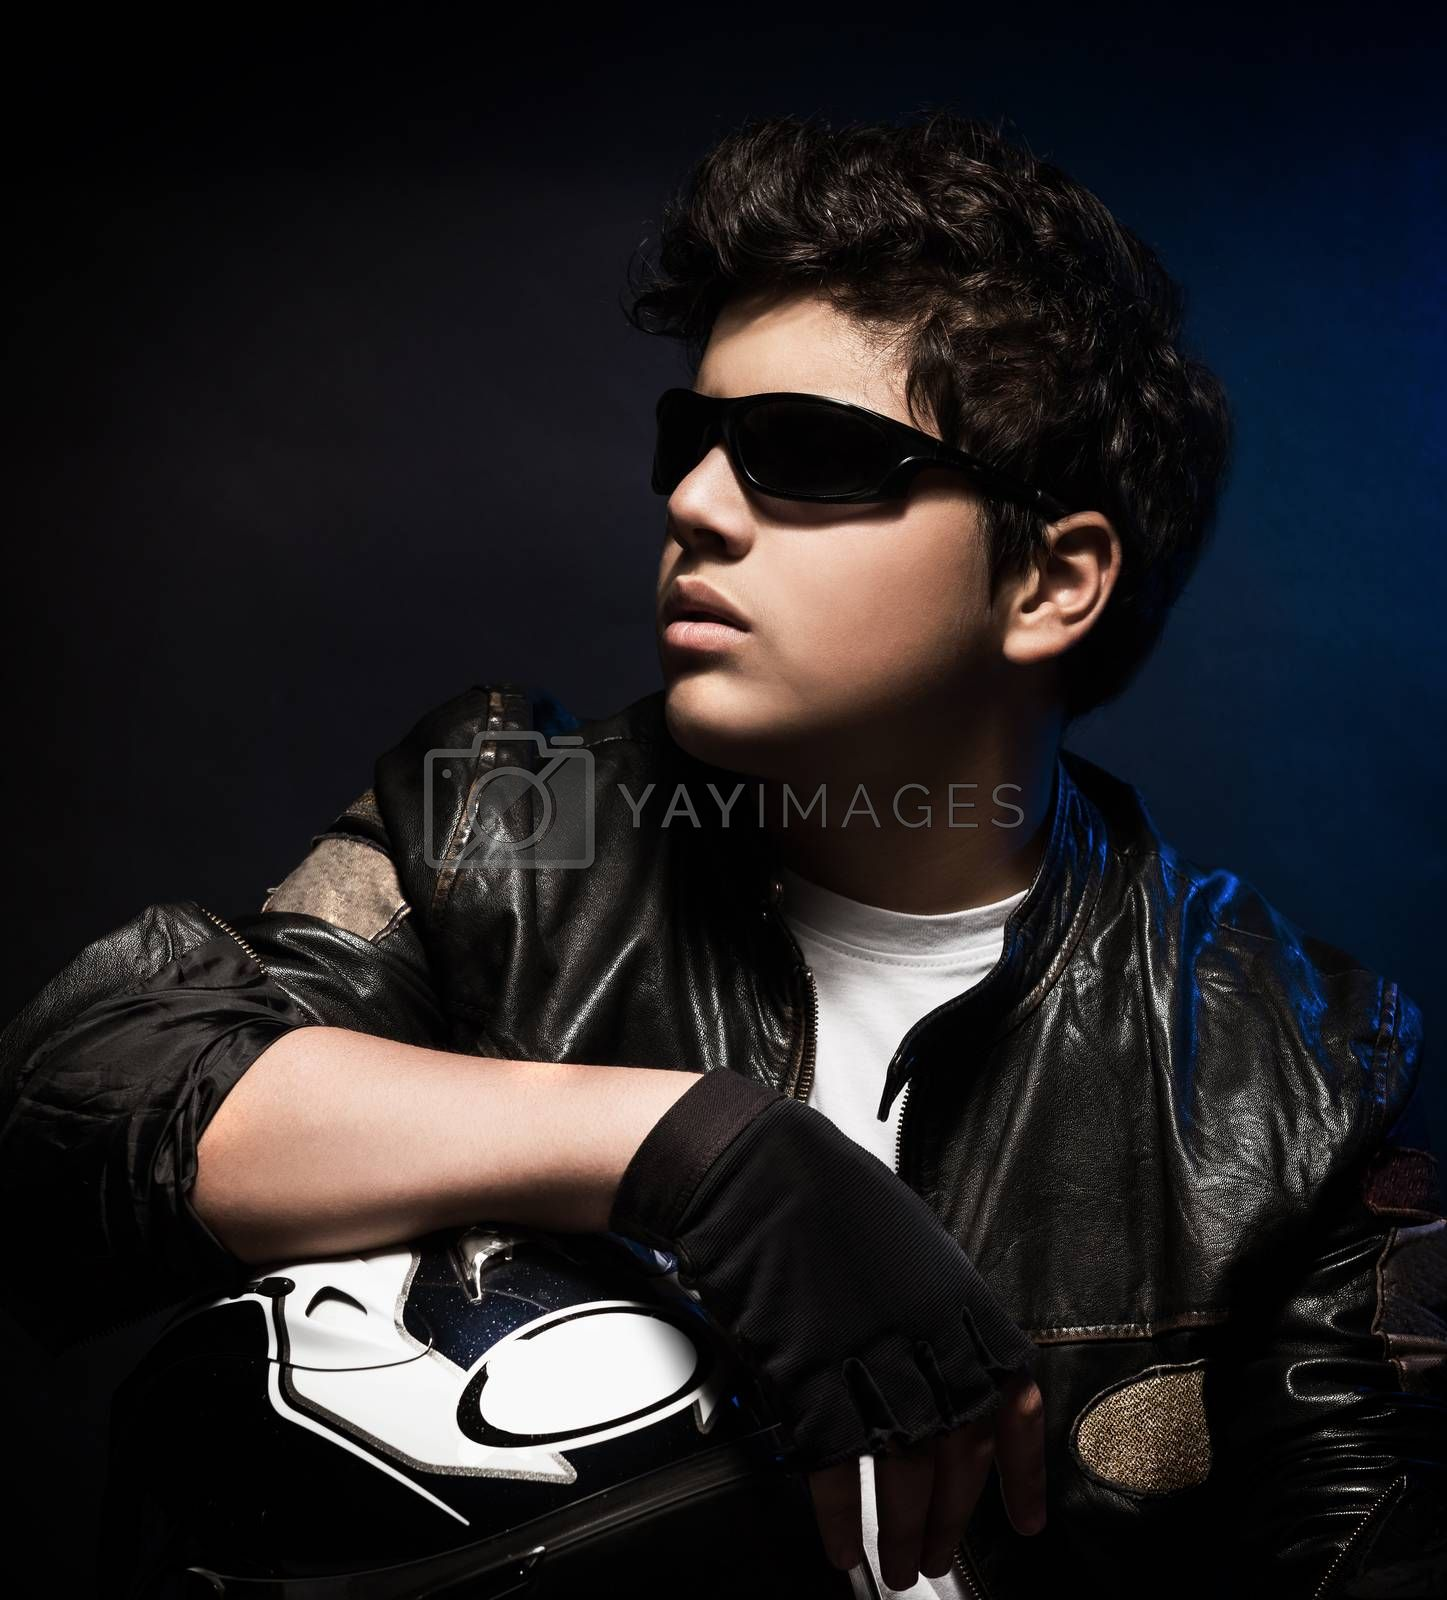 Portrait of handsome stylish biker over dark background, nice teen boy wearing fashion bikers outfit, enjoying extreme sport, active lifestyle